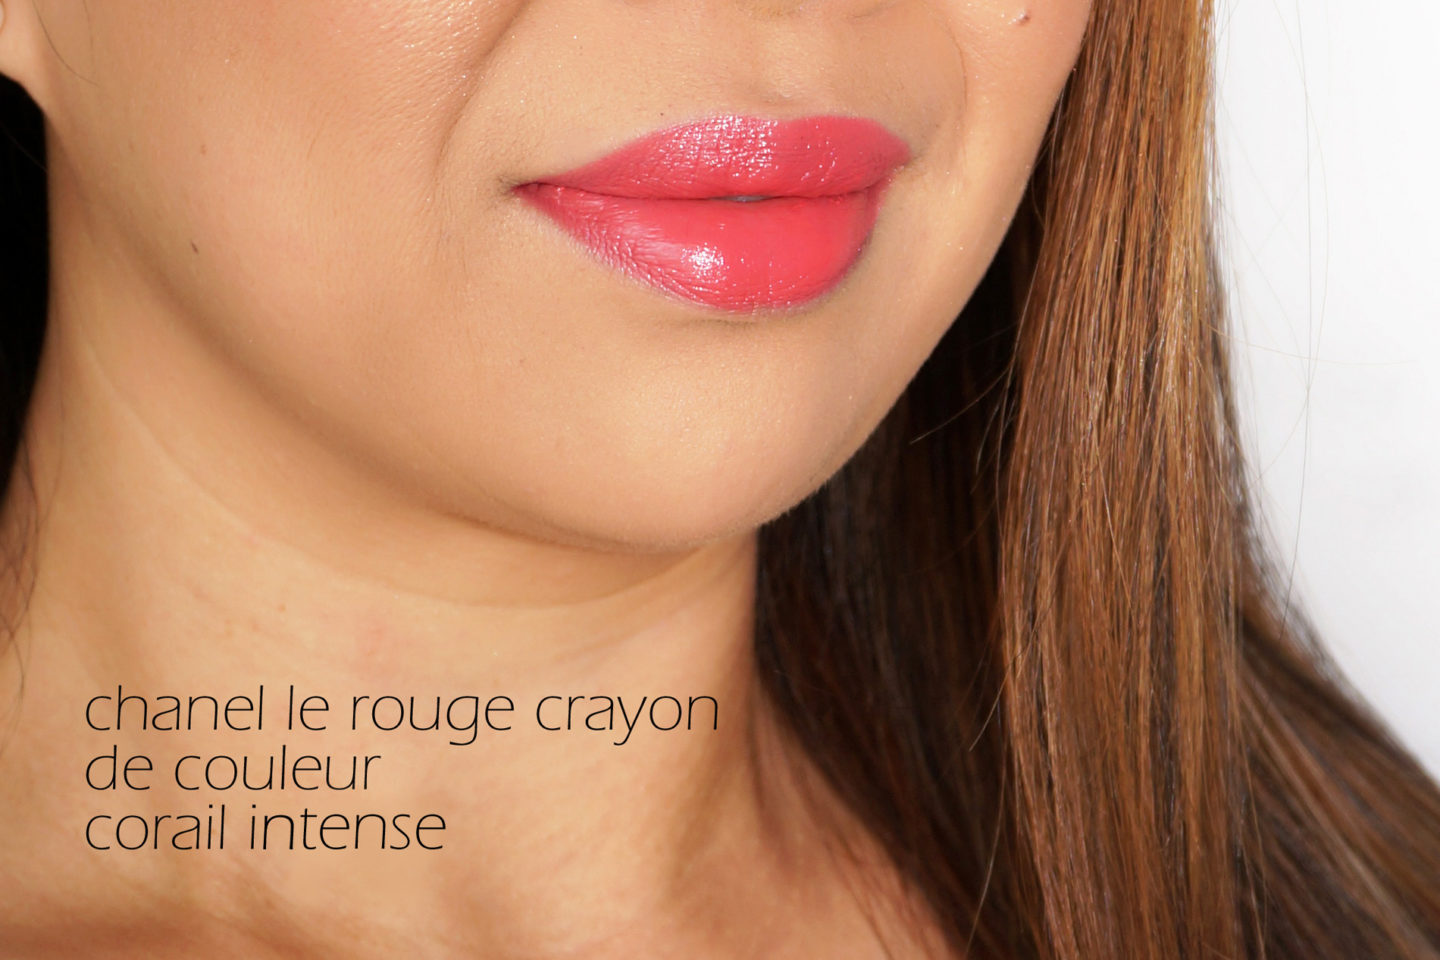 Chanel Le Rouge Crayon Corail Intense swatch